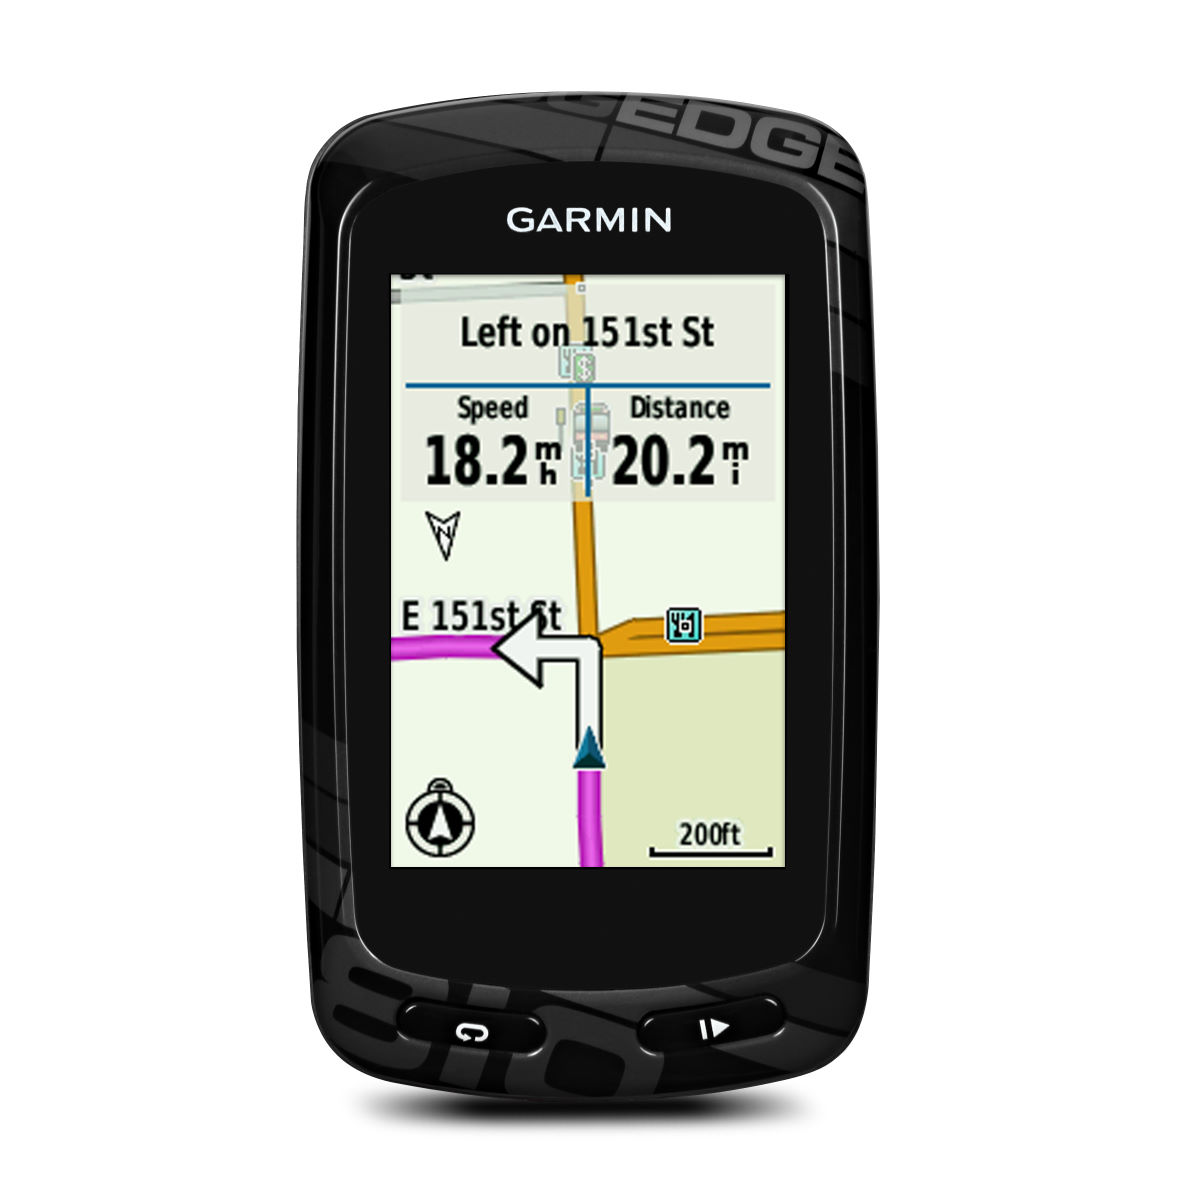 Garmin Edge 810 GPS Performance & Navigation Bundle